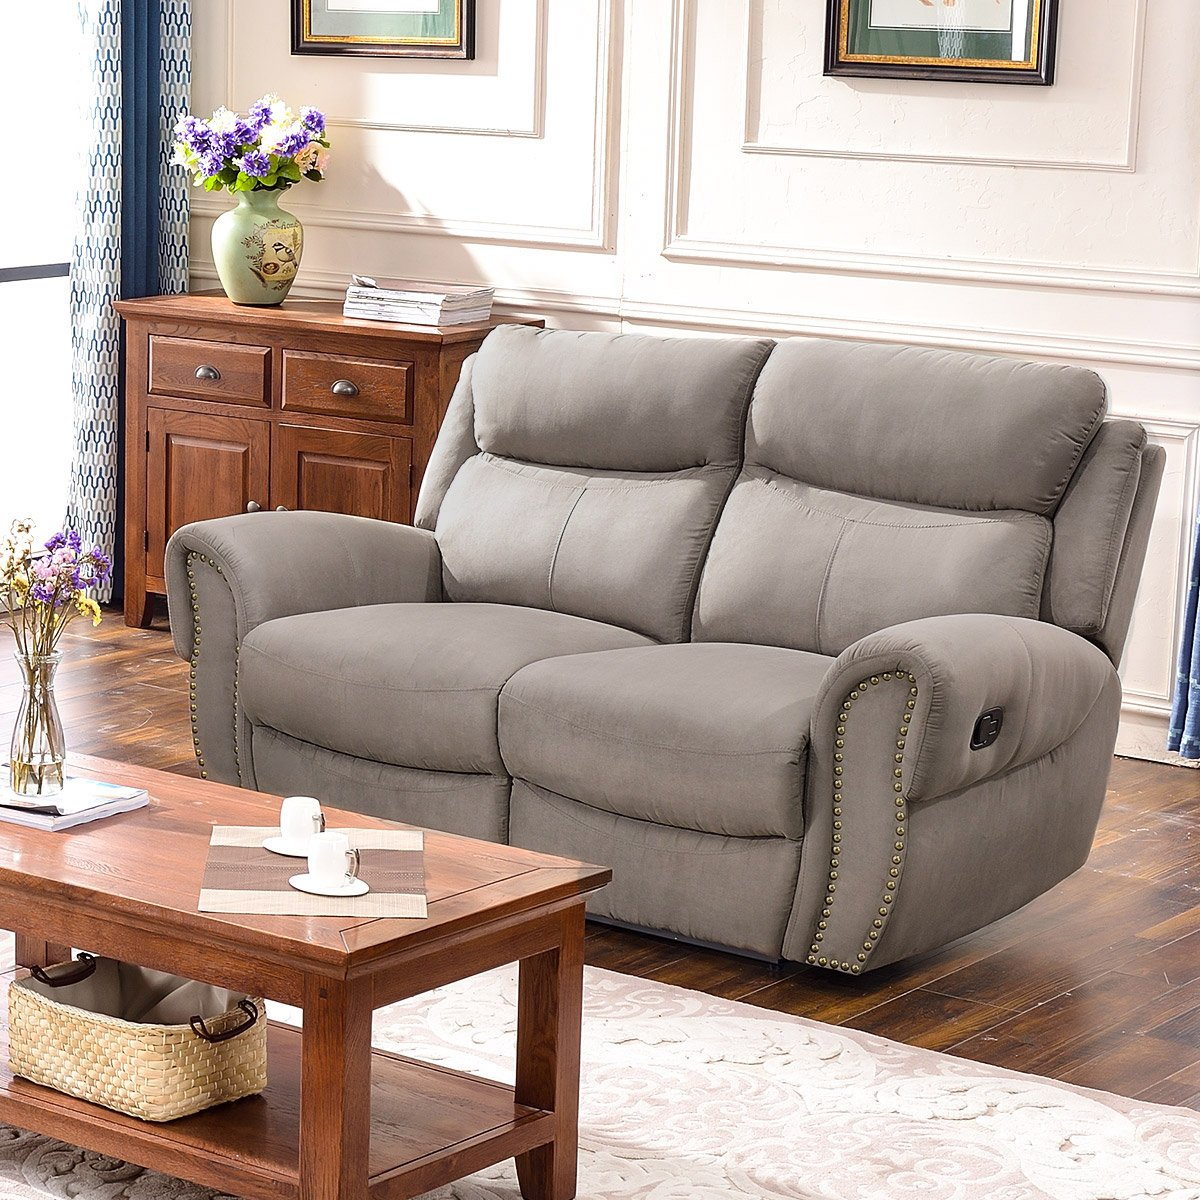 Harper & Bright Designs Sectional Sofa Set Including Chair, Loveseat and 3-Seat Sofa Recliner (Loveseat)